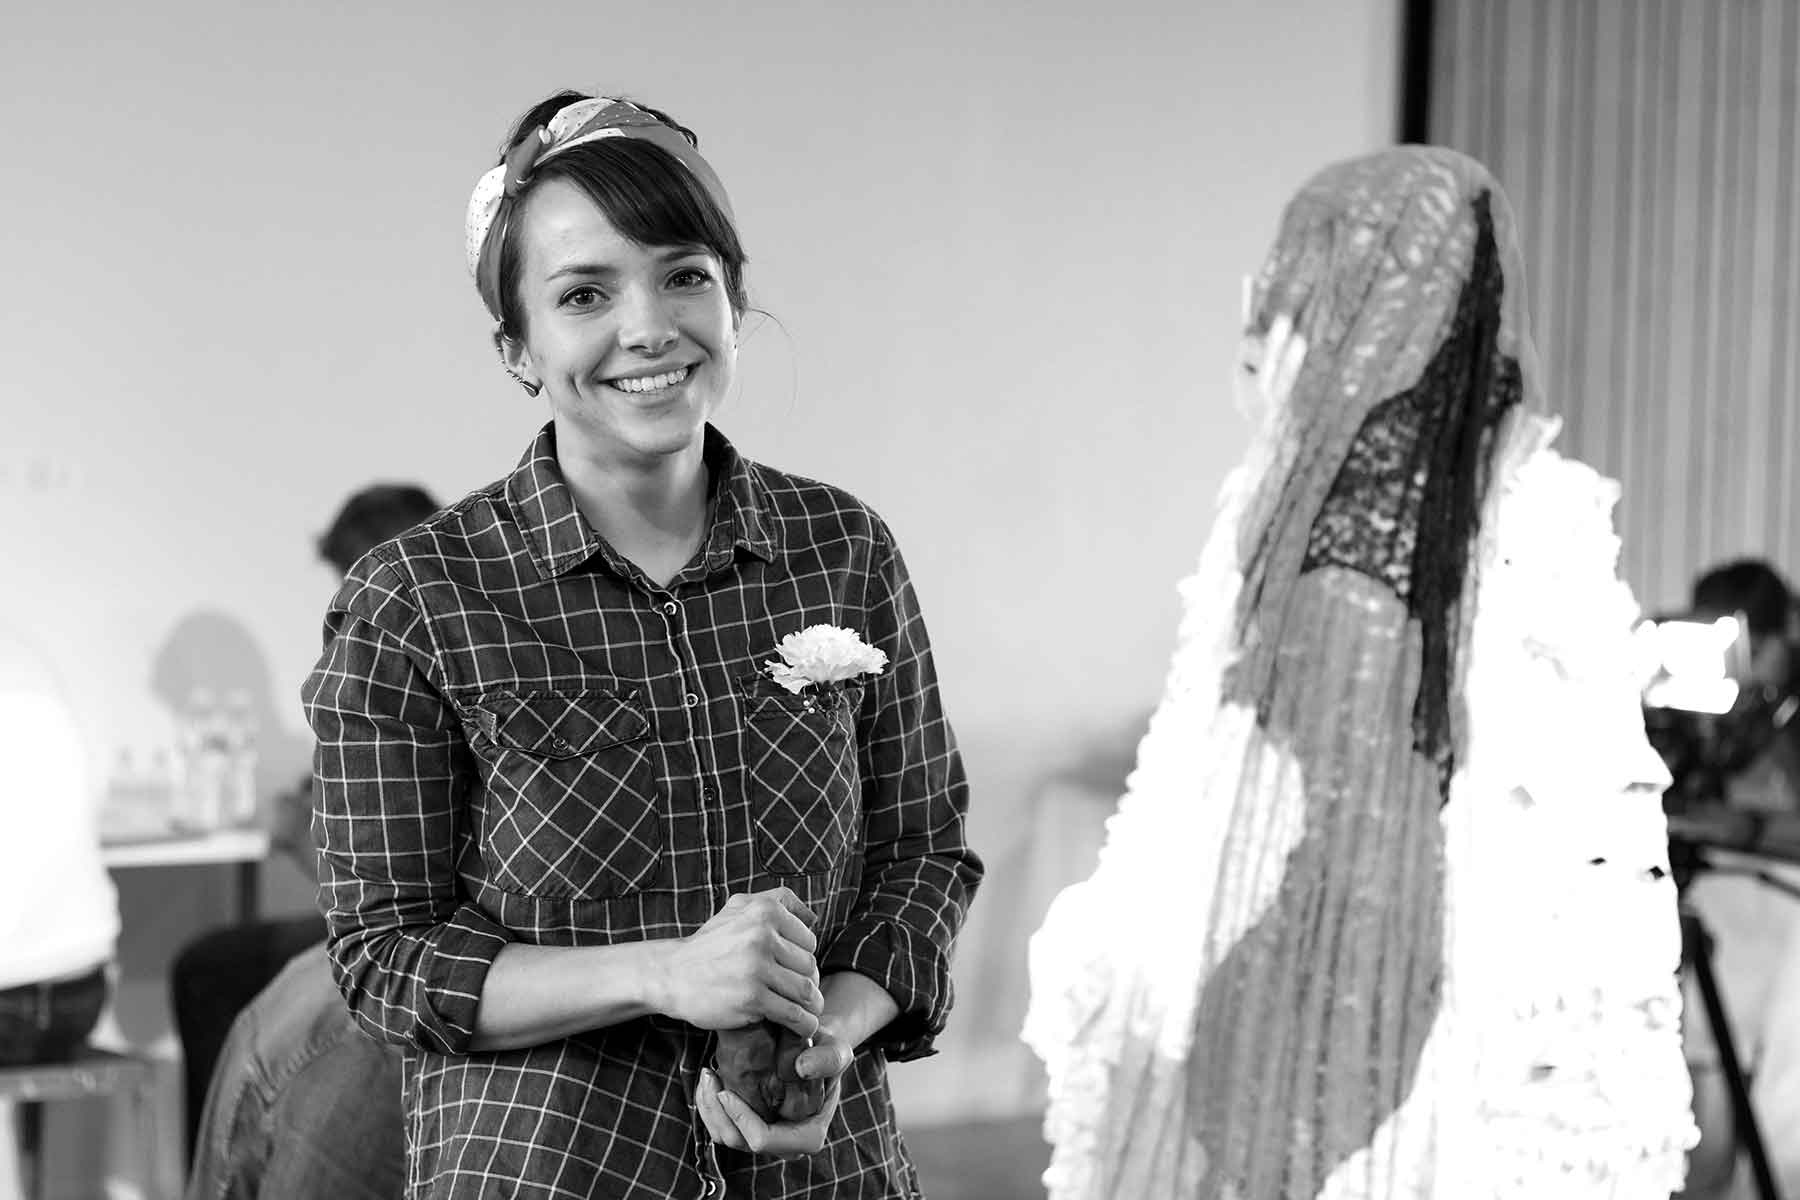 """Senior studio art major Heather Mawson molds clay as part of her piece """"Old, New, Borrowed, Blue"""" at the Glass Gallery."""